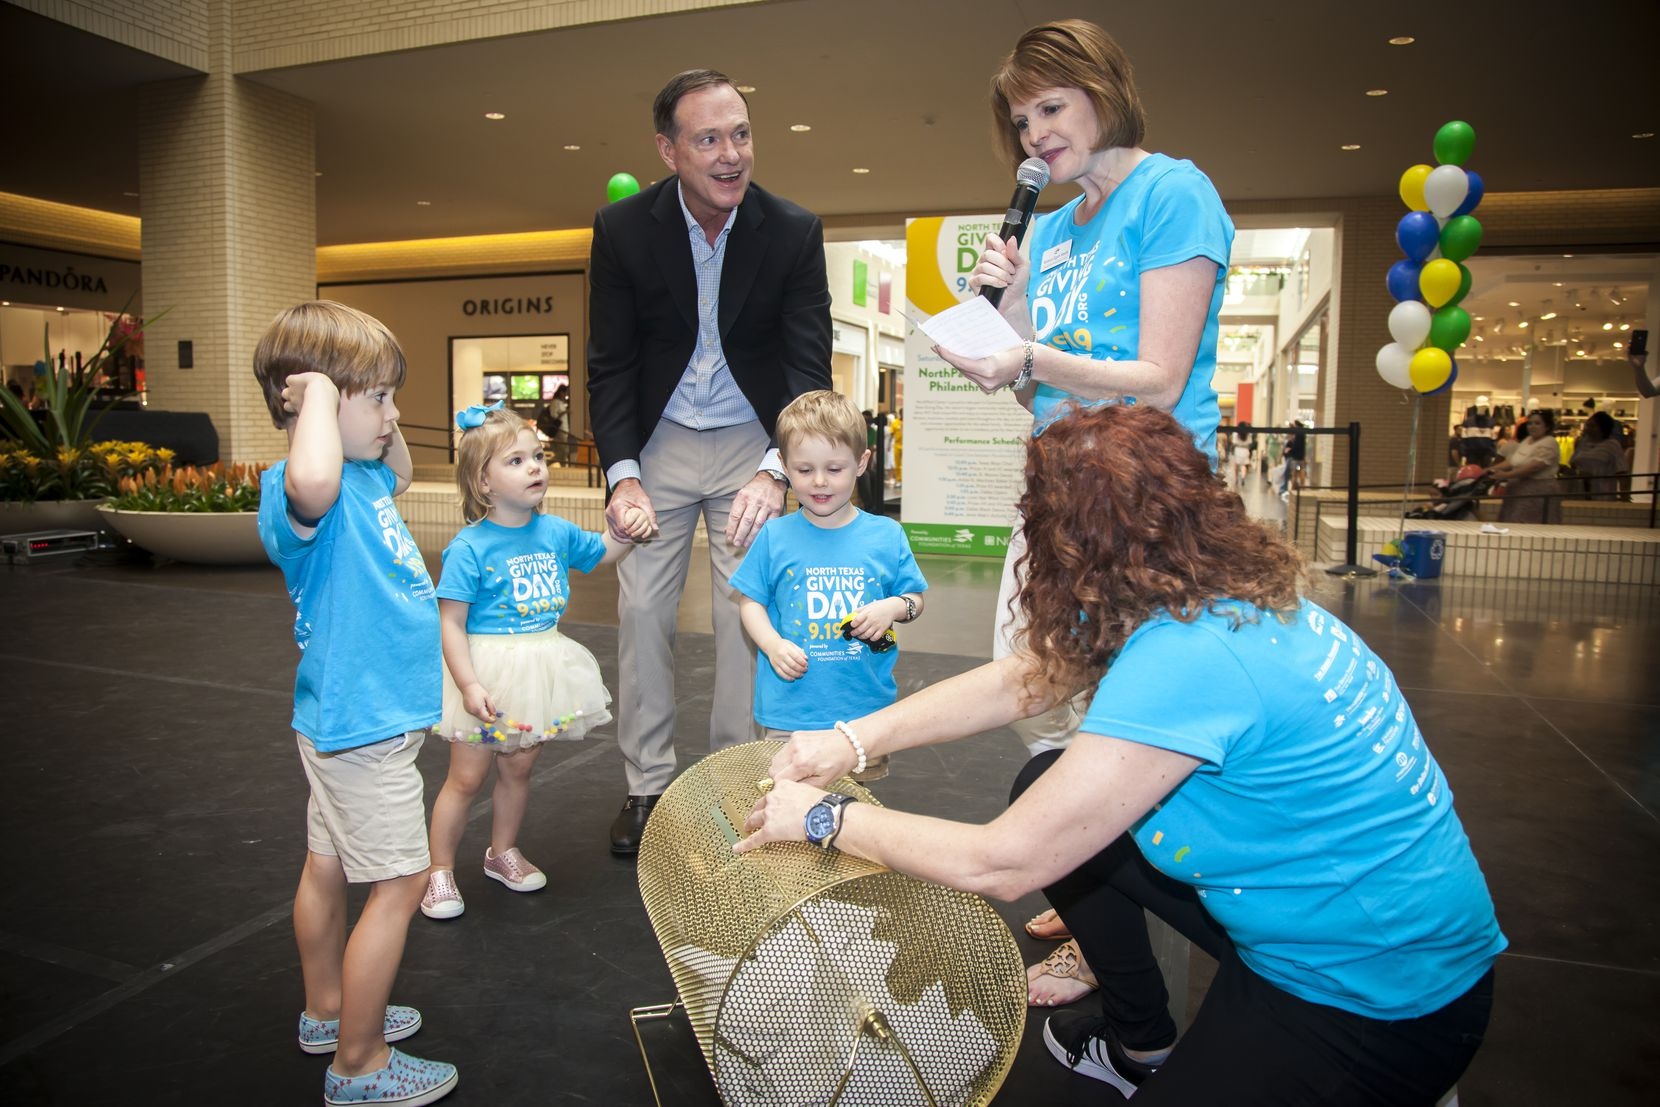 Dave Scullin, president and CEO of the Communities Foundation of Texas, and his grandchildren, from left, Henry and Colette Long and Jack Scullin, helped foundation staffers Monica Egert Smith and Stephenie Barr-Hughes draw draw prize winners during North Texas Giving Day festivities at the NorthPark Family Philanthropy Festival in September 2019.         Names from left:  Dave Scullin and his grandchildren help Monica Egert Smith draw a nonprofit prizewinner's name